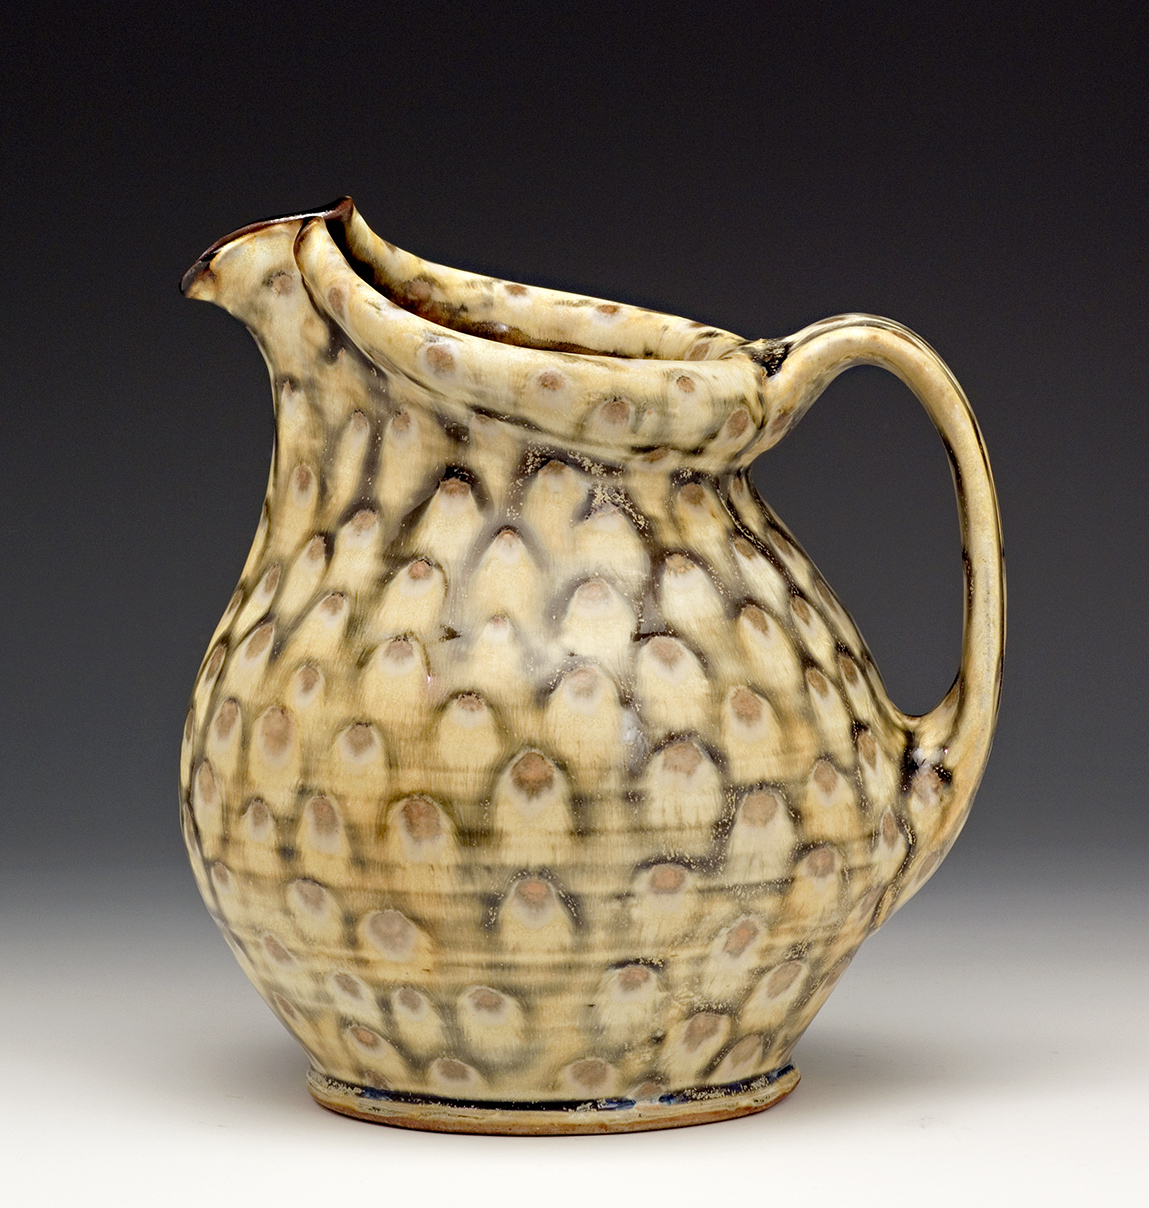 Pitcher made by Bruce Gholson